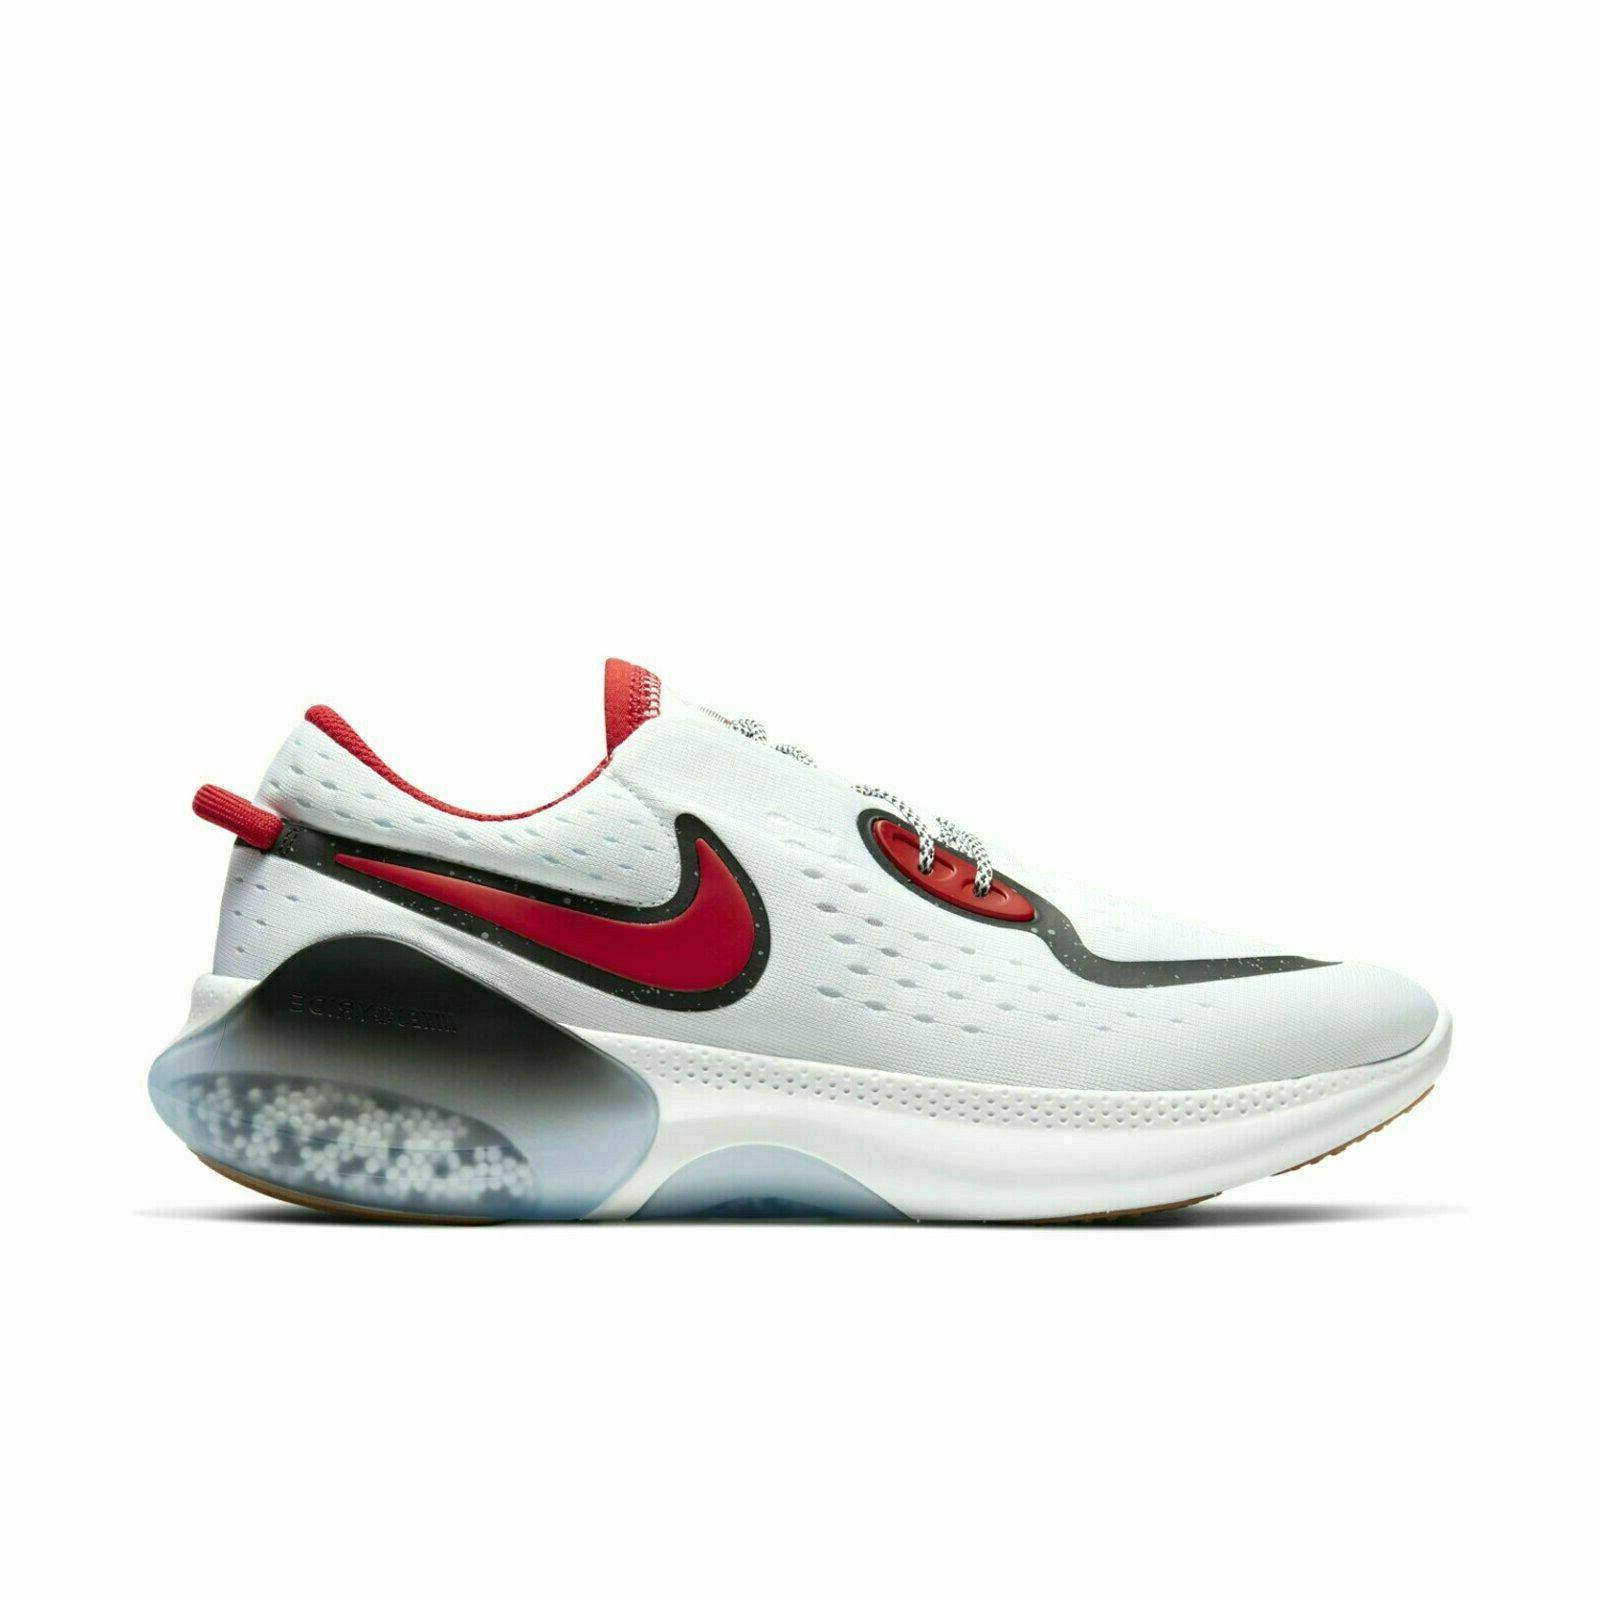 Nike Joyride Dual Mens Shoes White Red CW5244-100